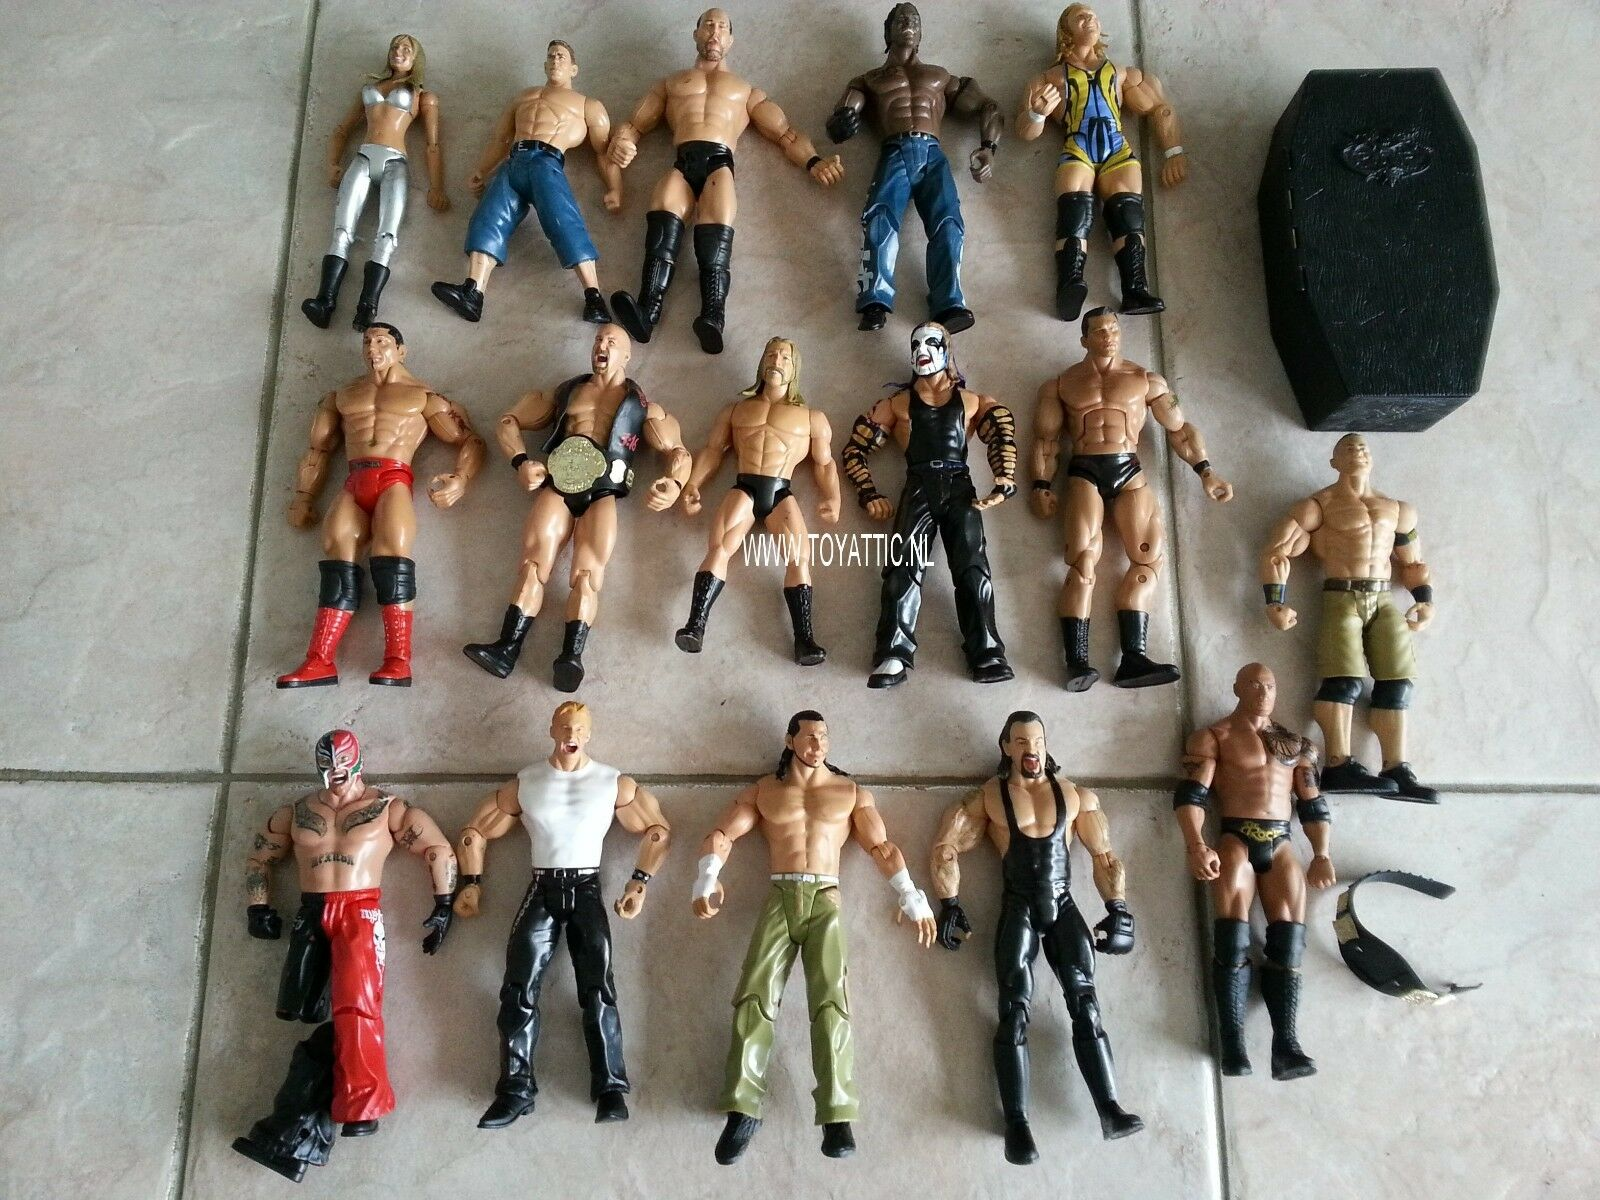 WWE wrestling action figures hugh lot of 16 figures jakks pacific mattel titan